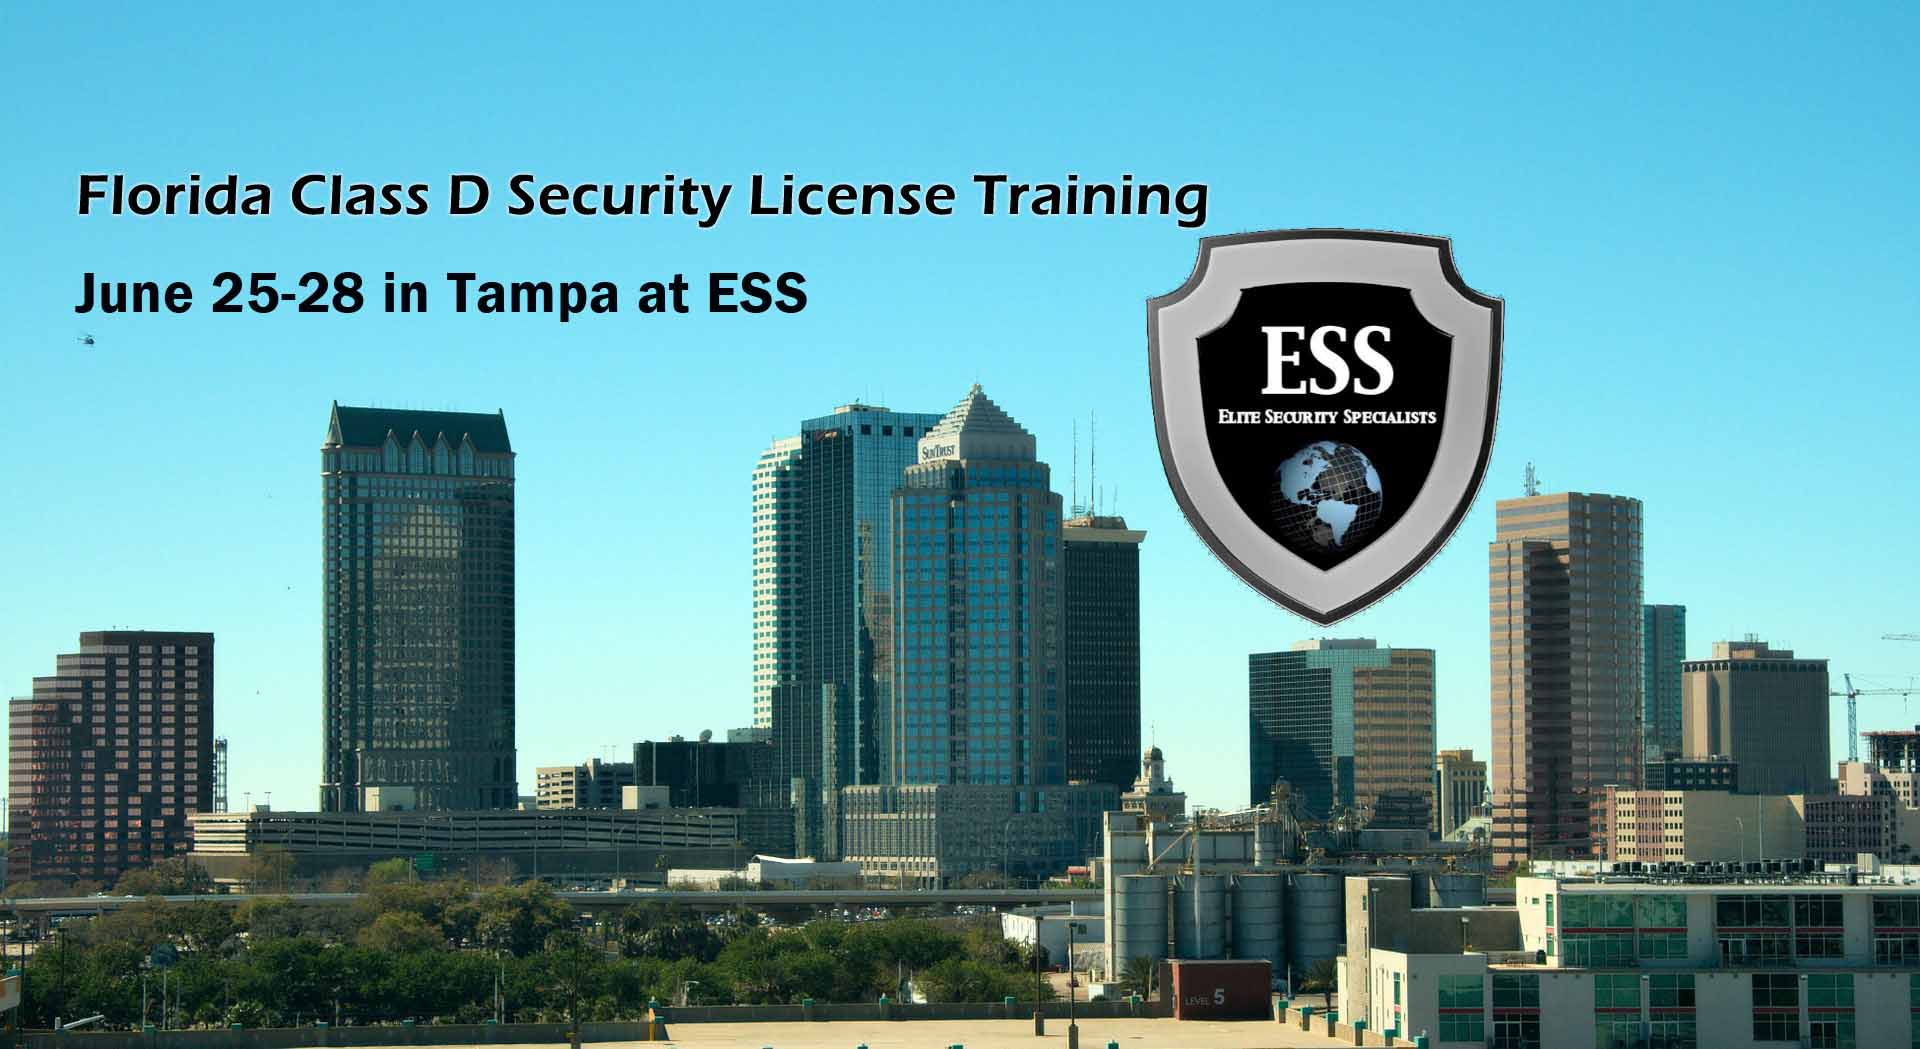 upcoming events at ess - Class D Security training june 25-28